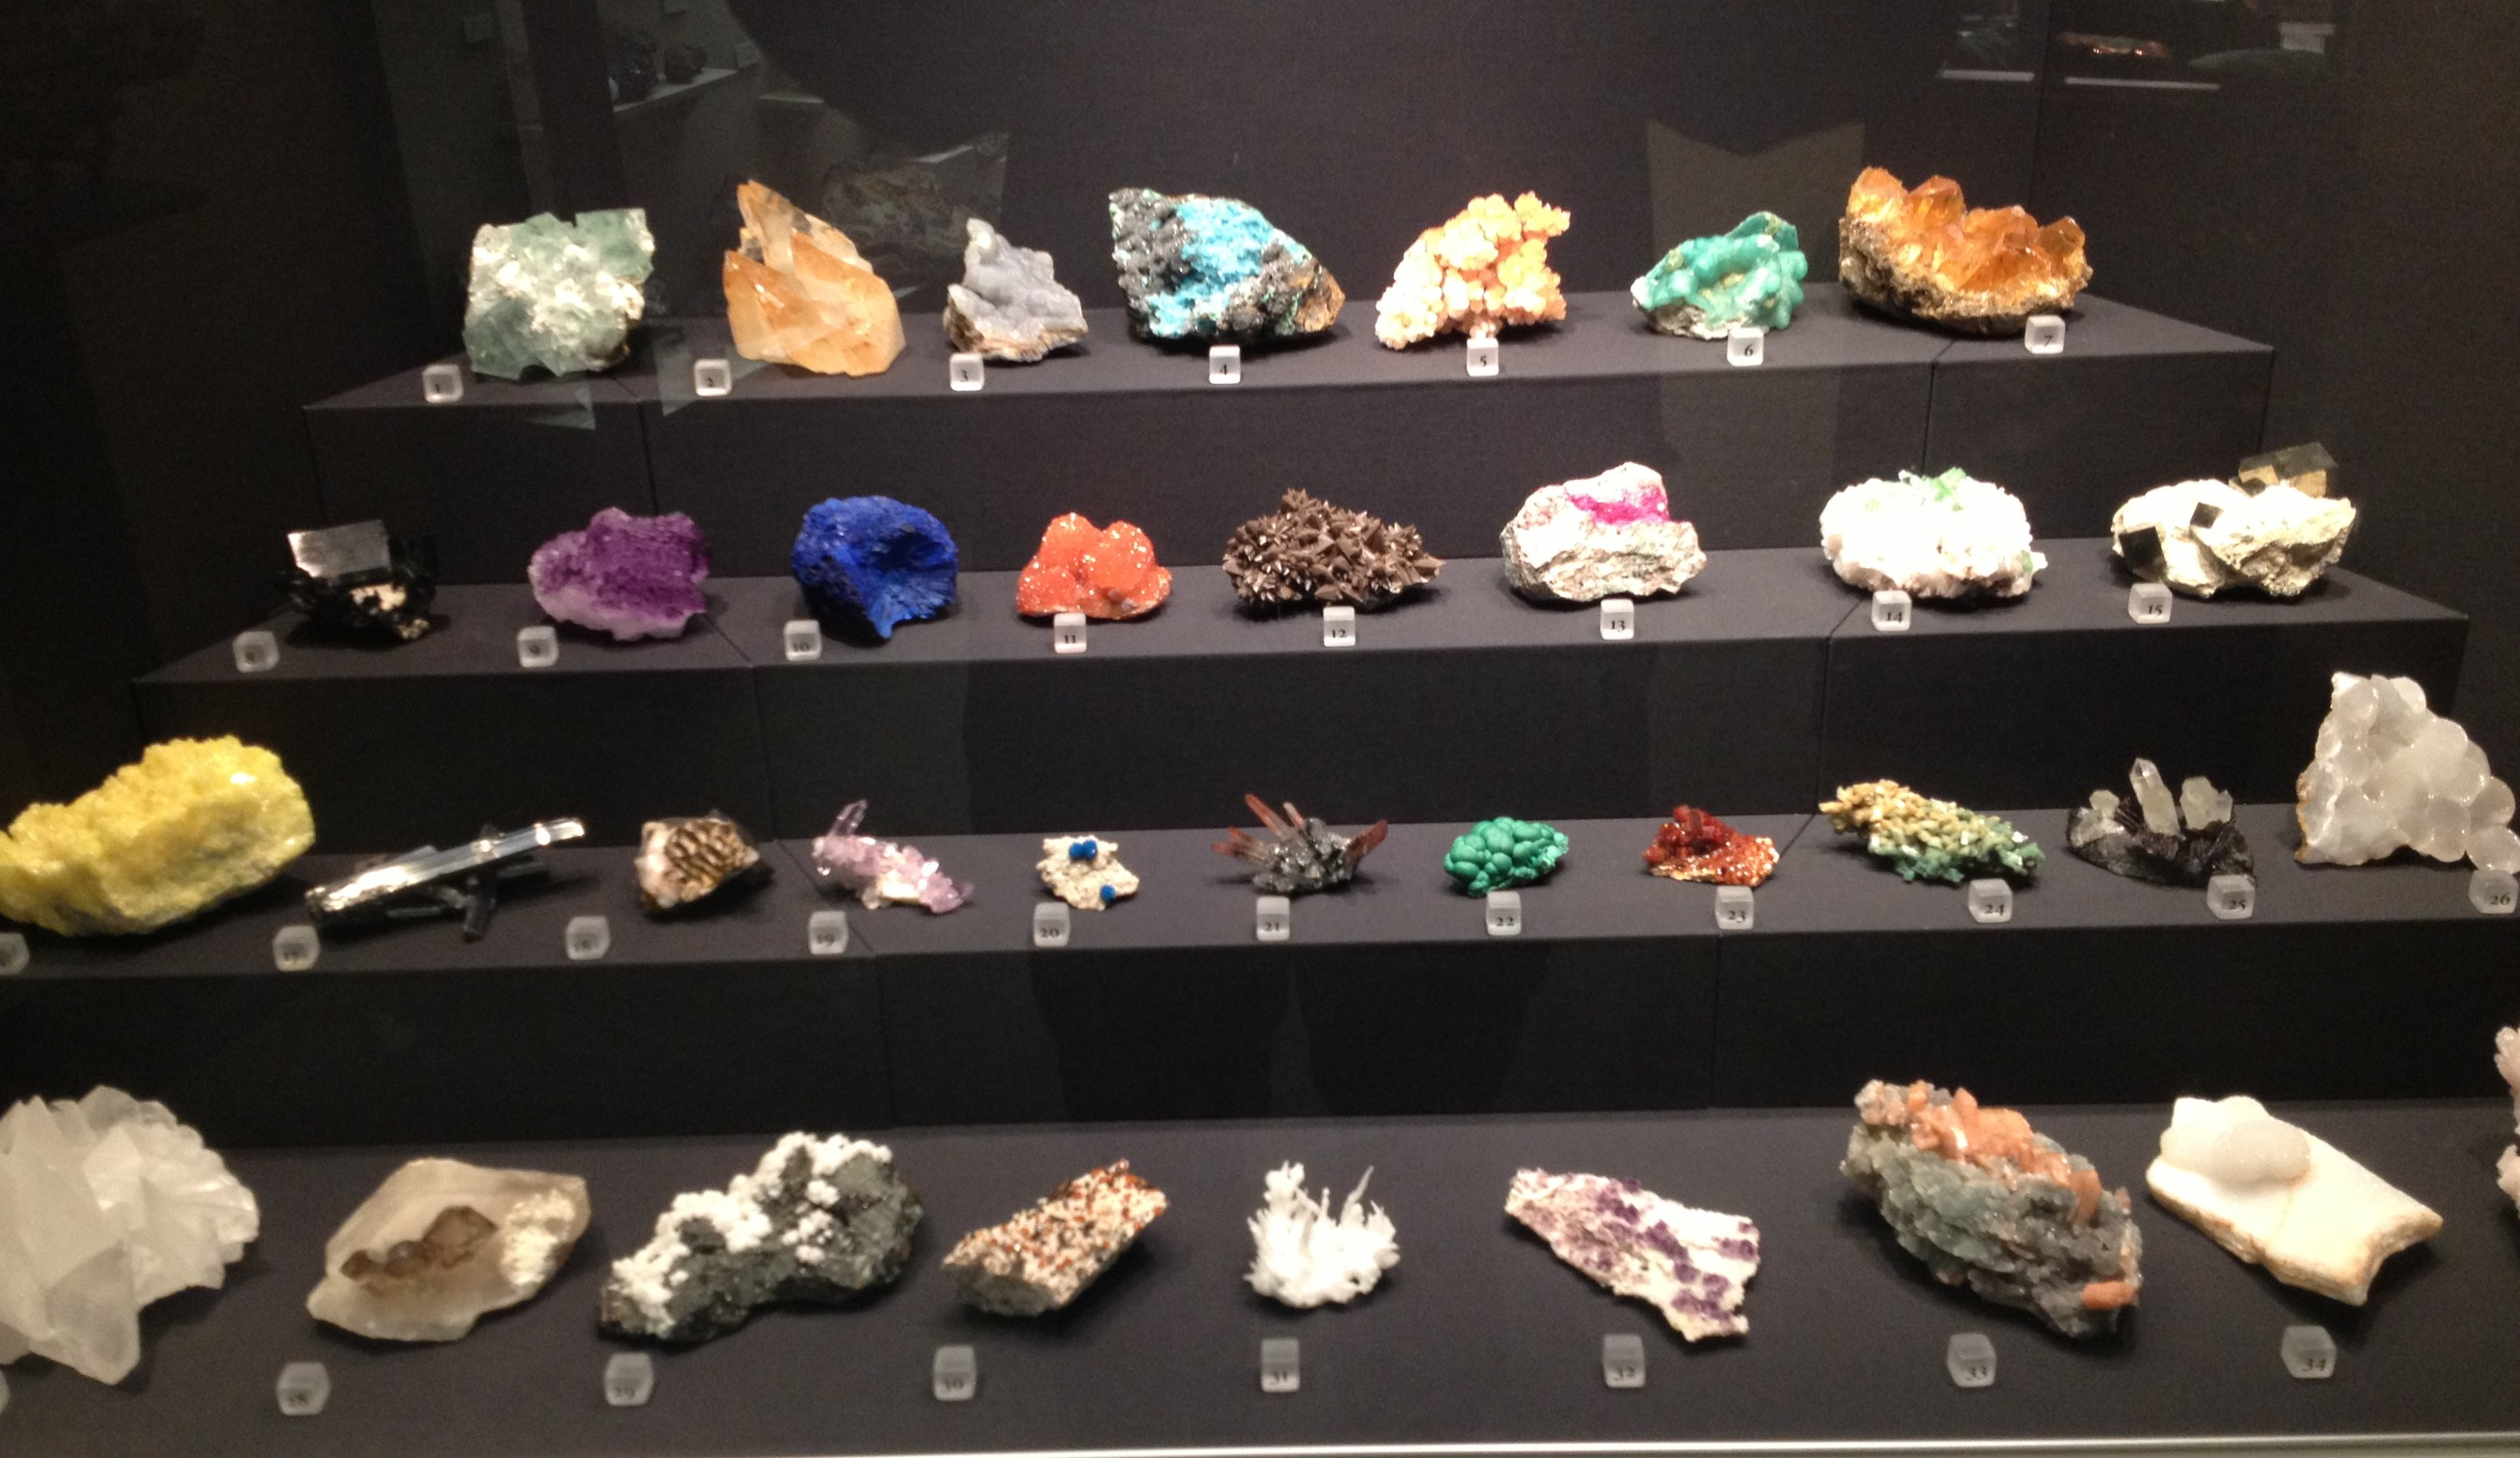 File:Gfp-display-case-of-minerals.jpg